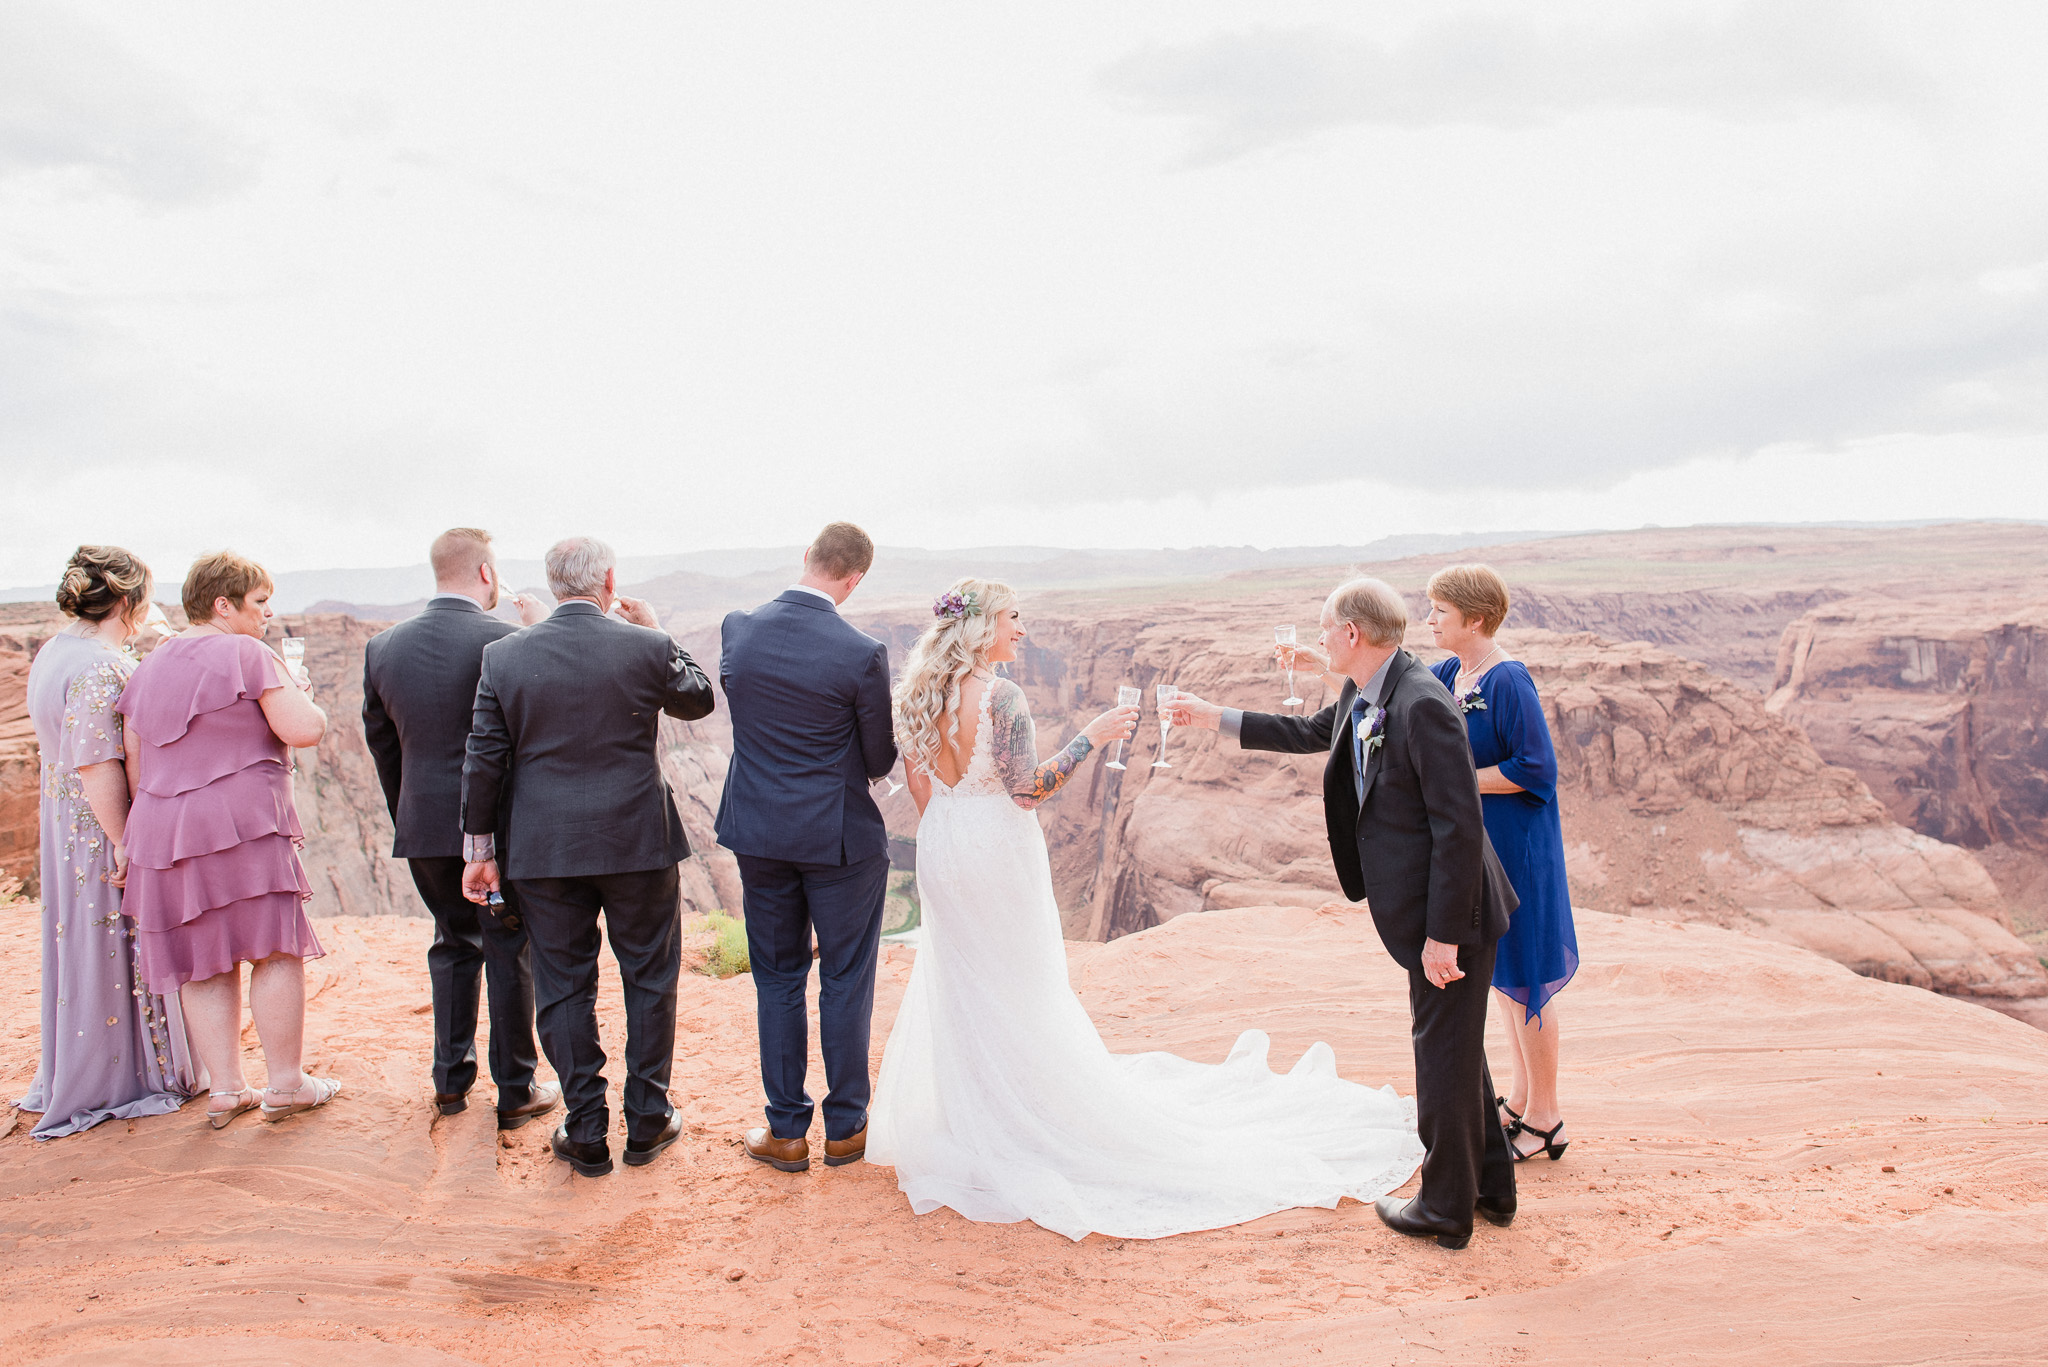 Wedding photos at Horseshoe Bend, in Page, AZ Jenn Kavanagh Photography